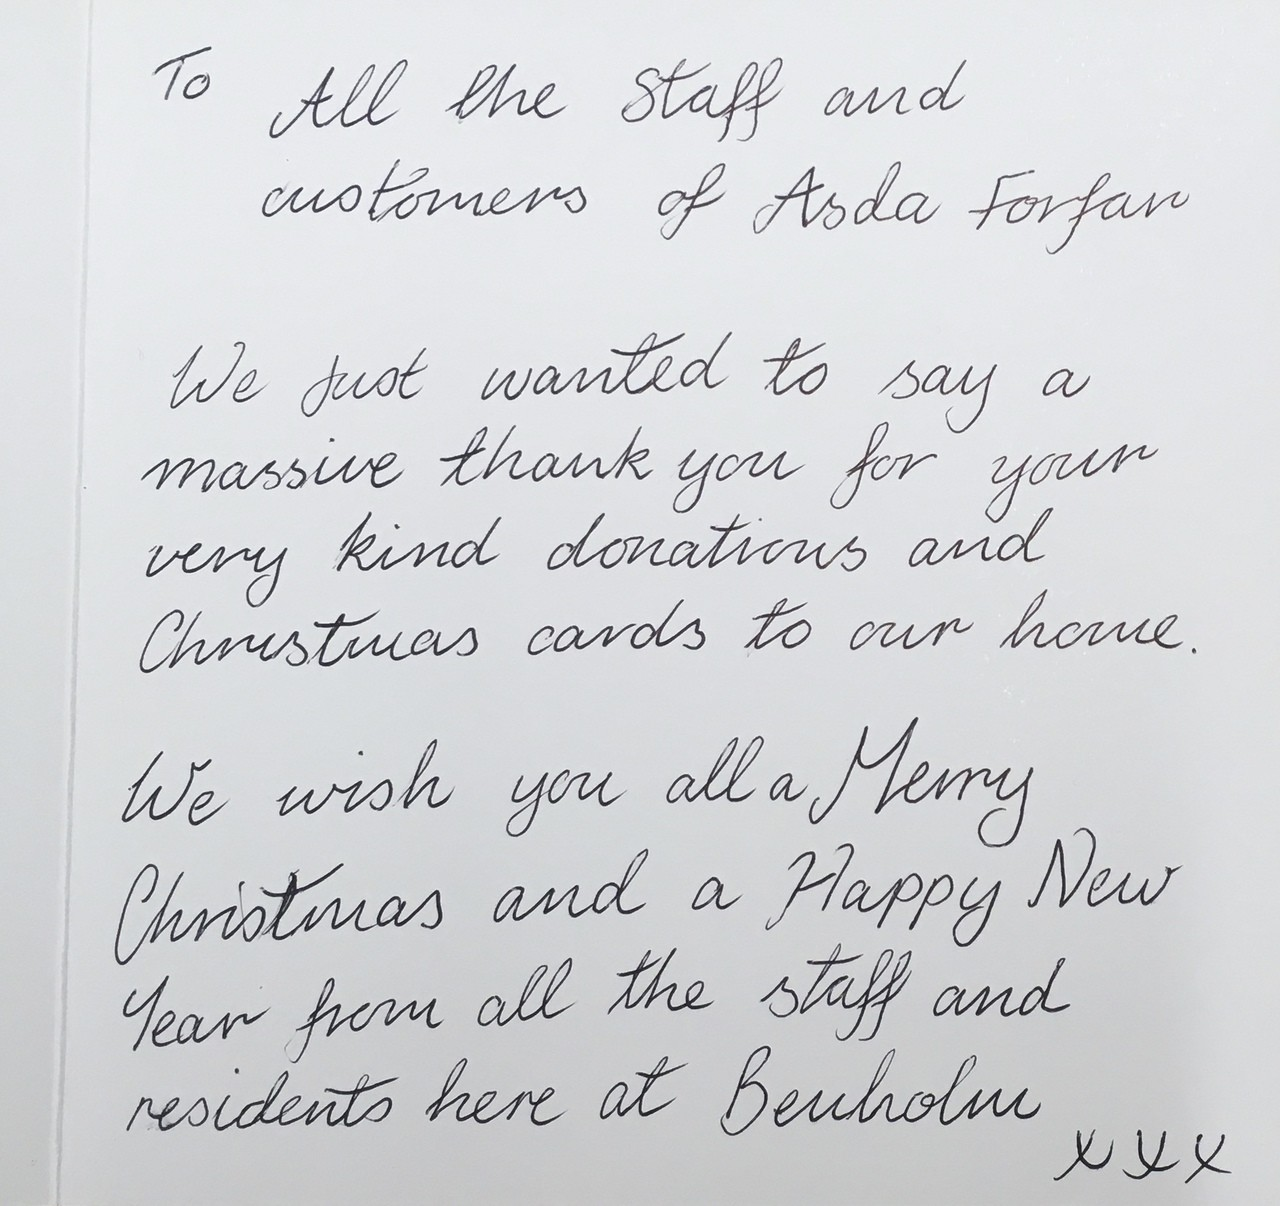 A Thank You from Benholm Care Home | Asda Forfar